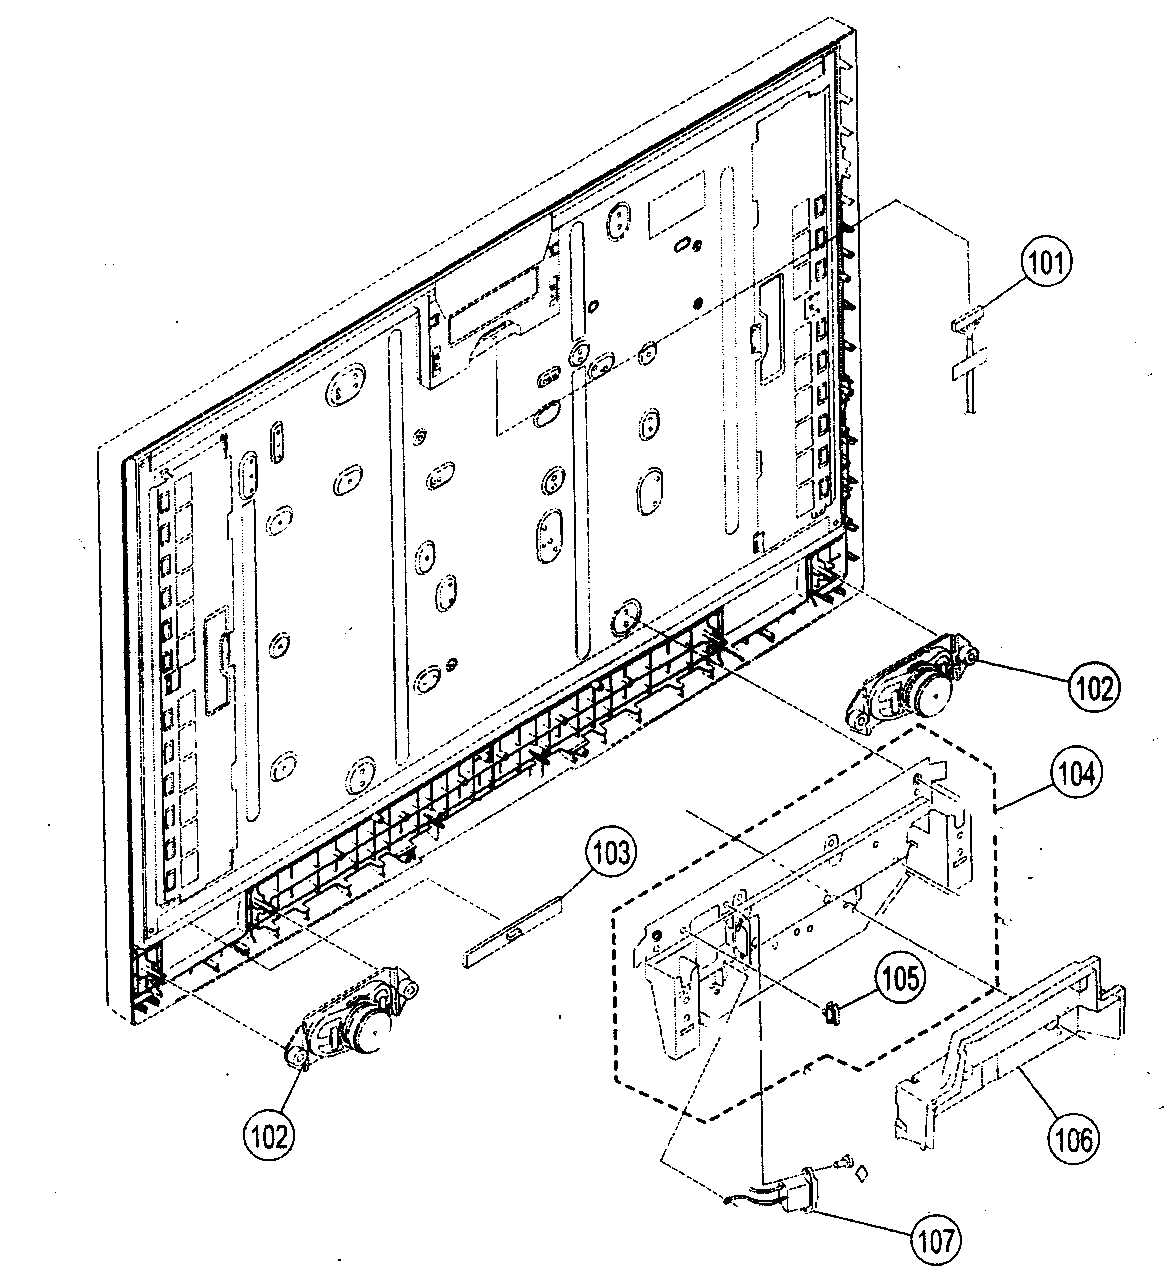 SPEAKERS Diagram & Parts List for Model kdl46v2500 Sony